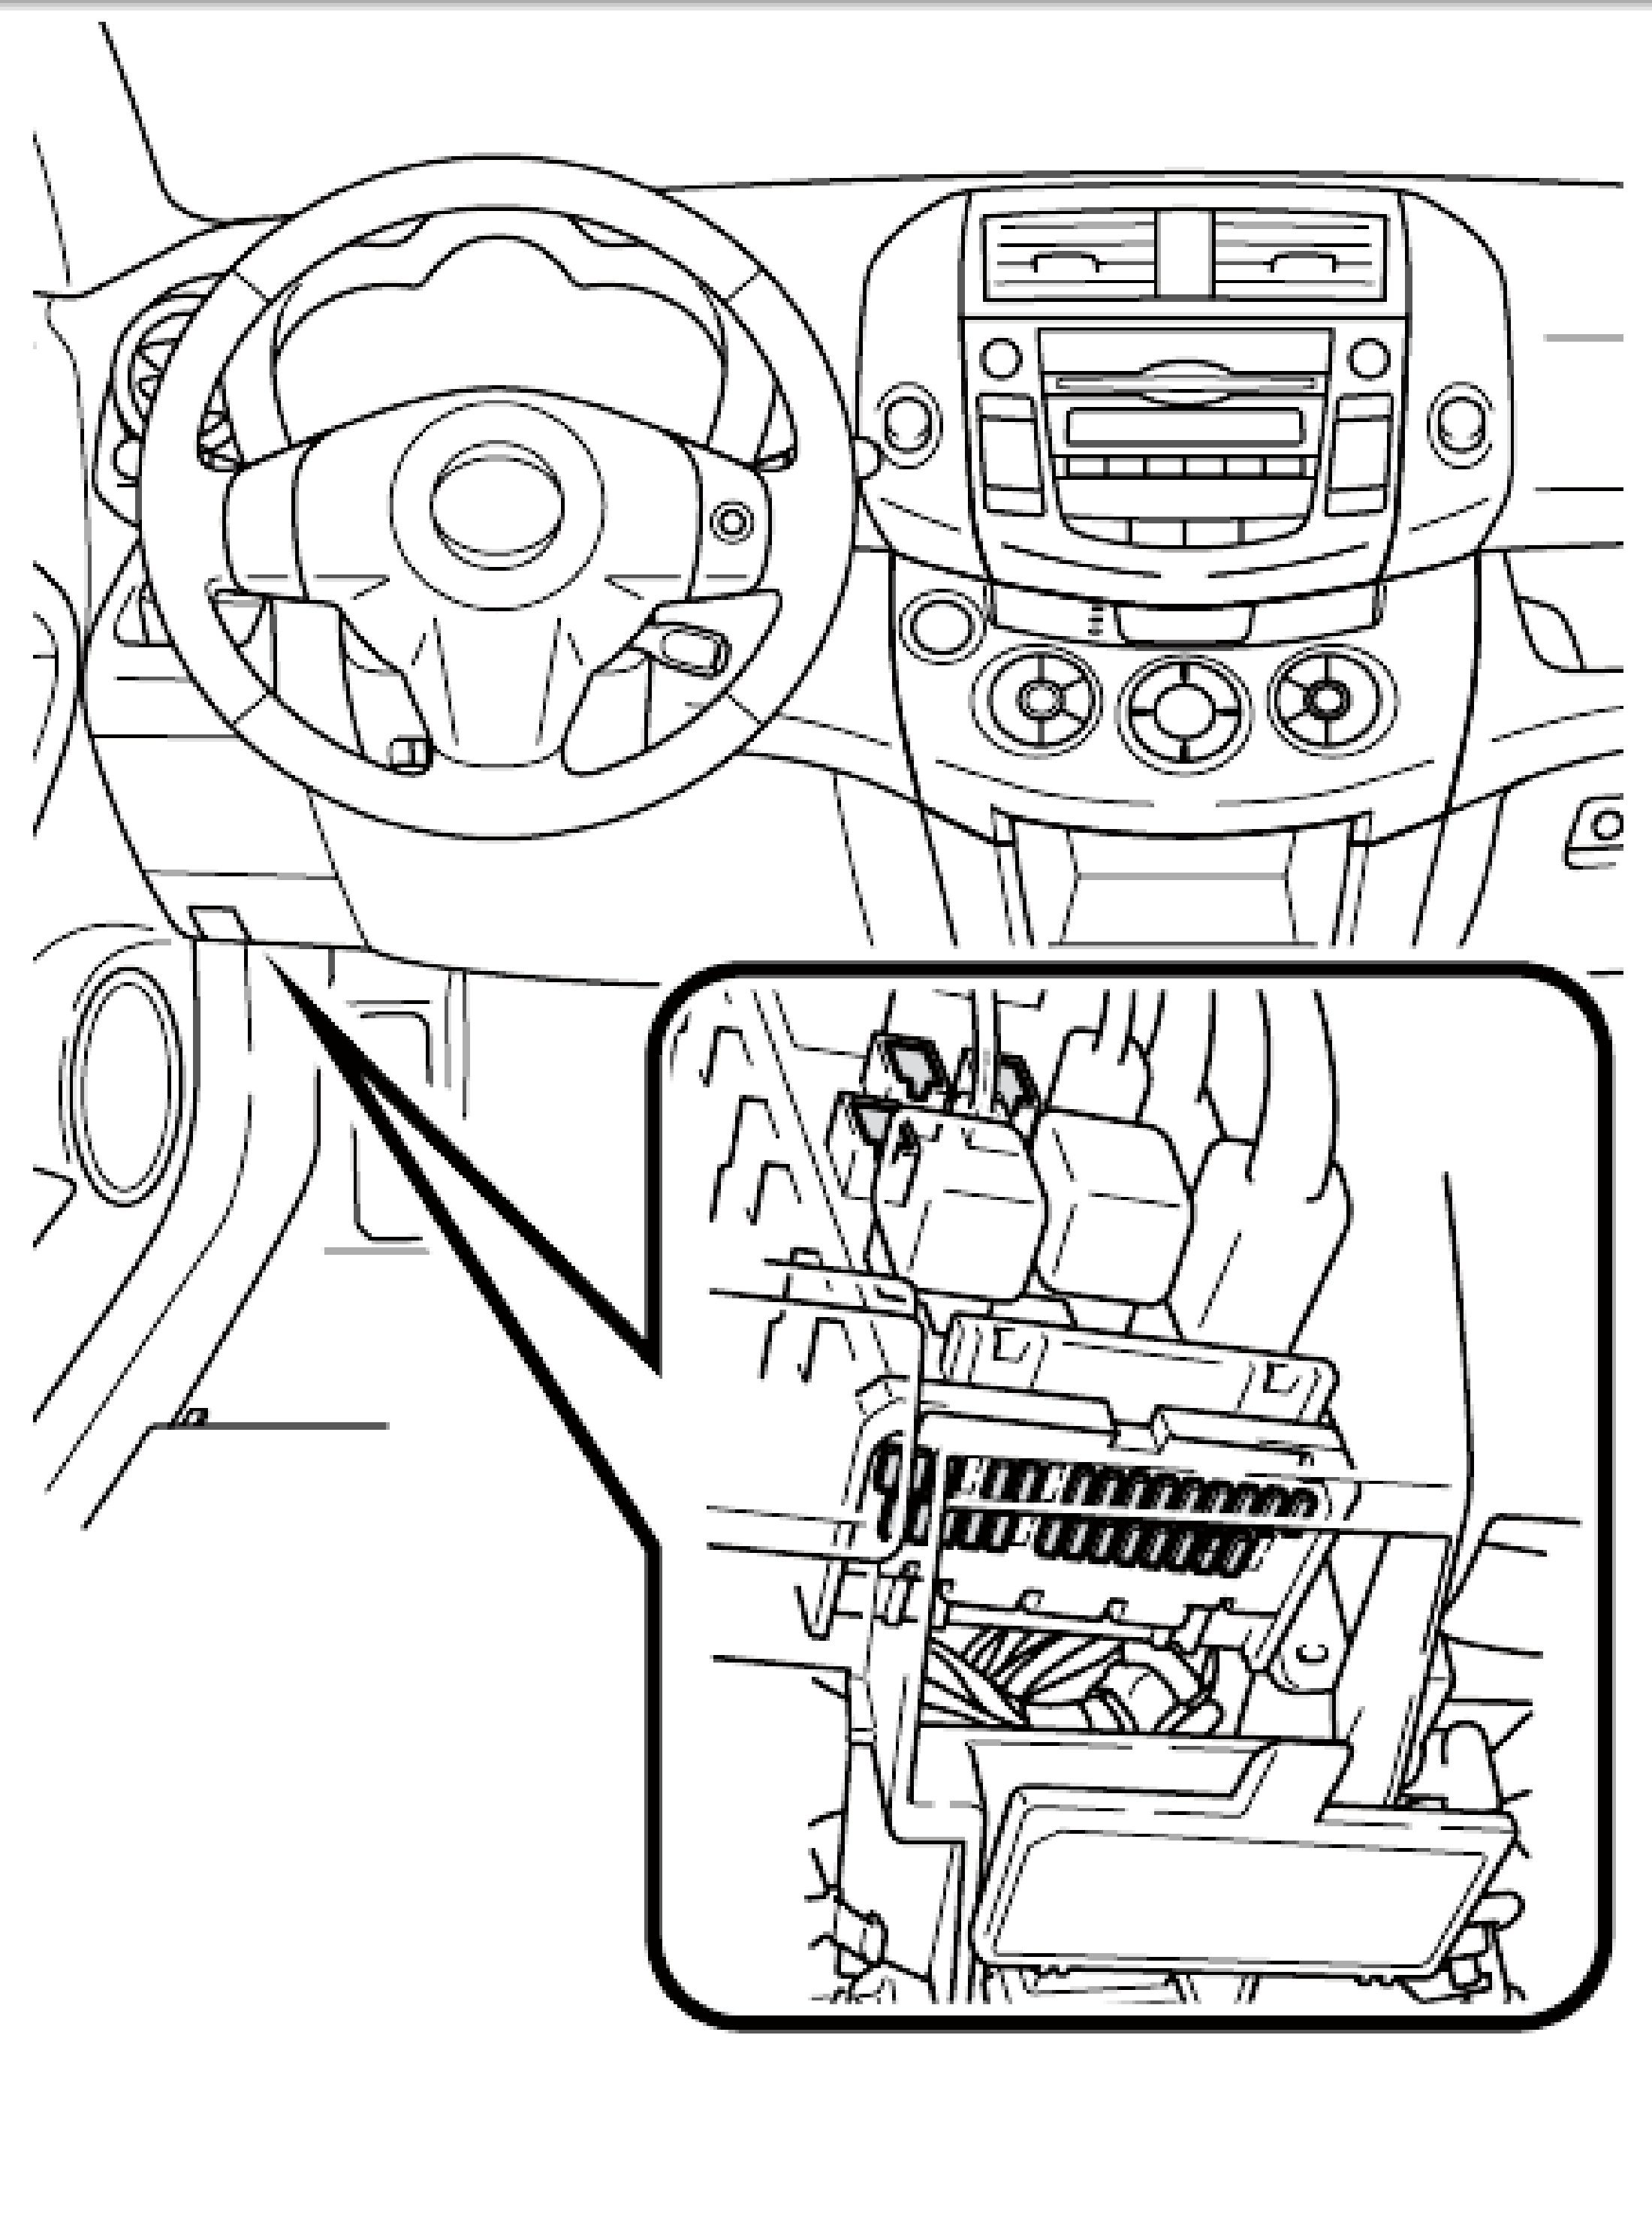 Fuse Box Diagram For 2000 Toyota Avalon Electrical Wiring Diagrams 1991 Previa 2007 Image Details